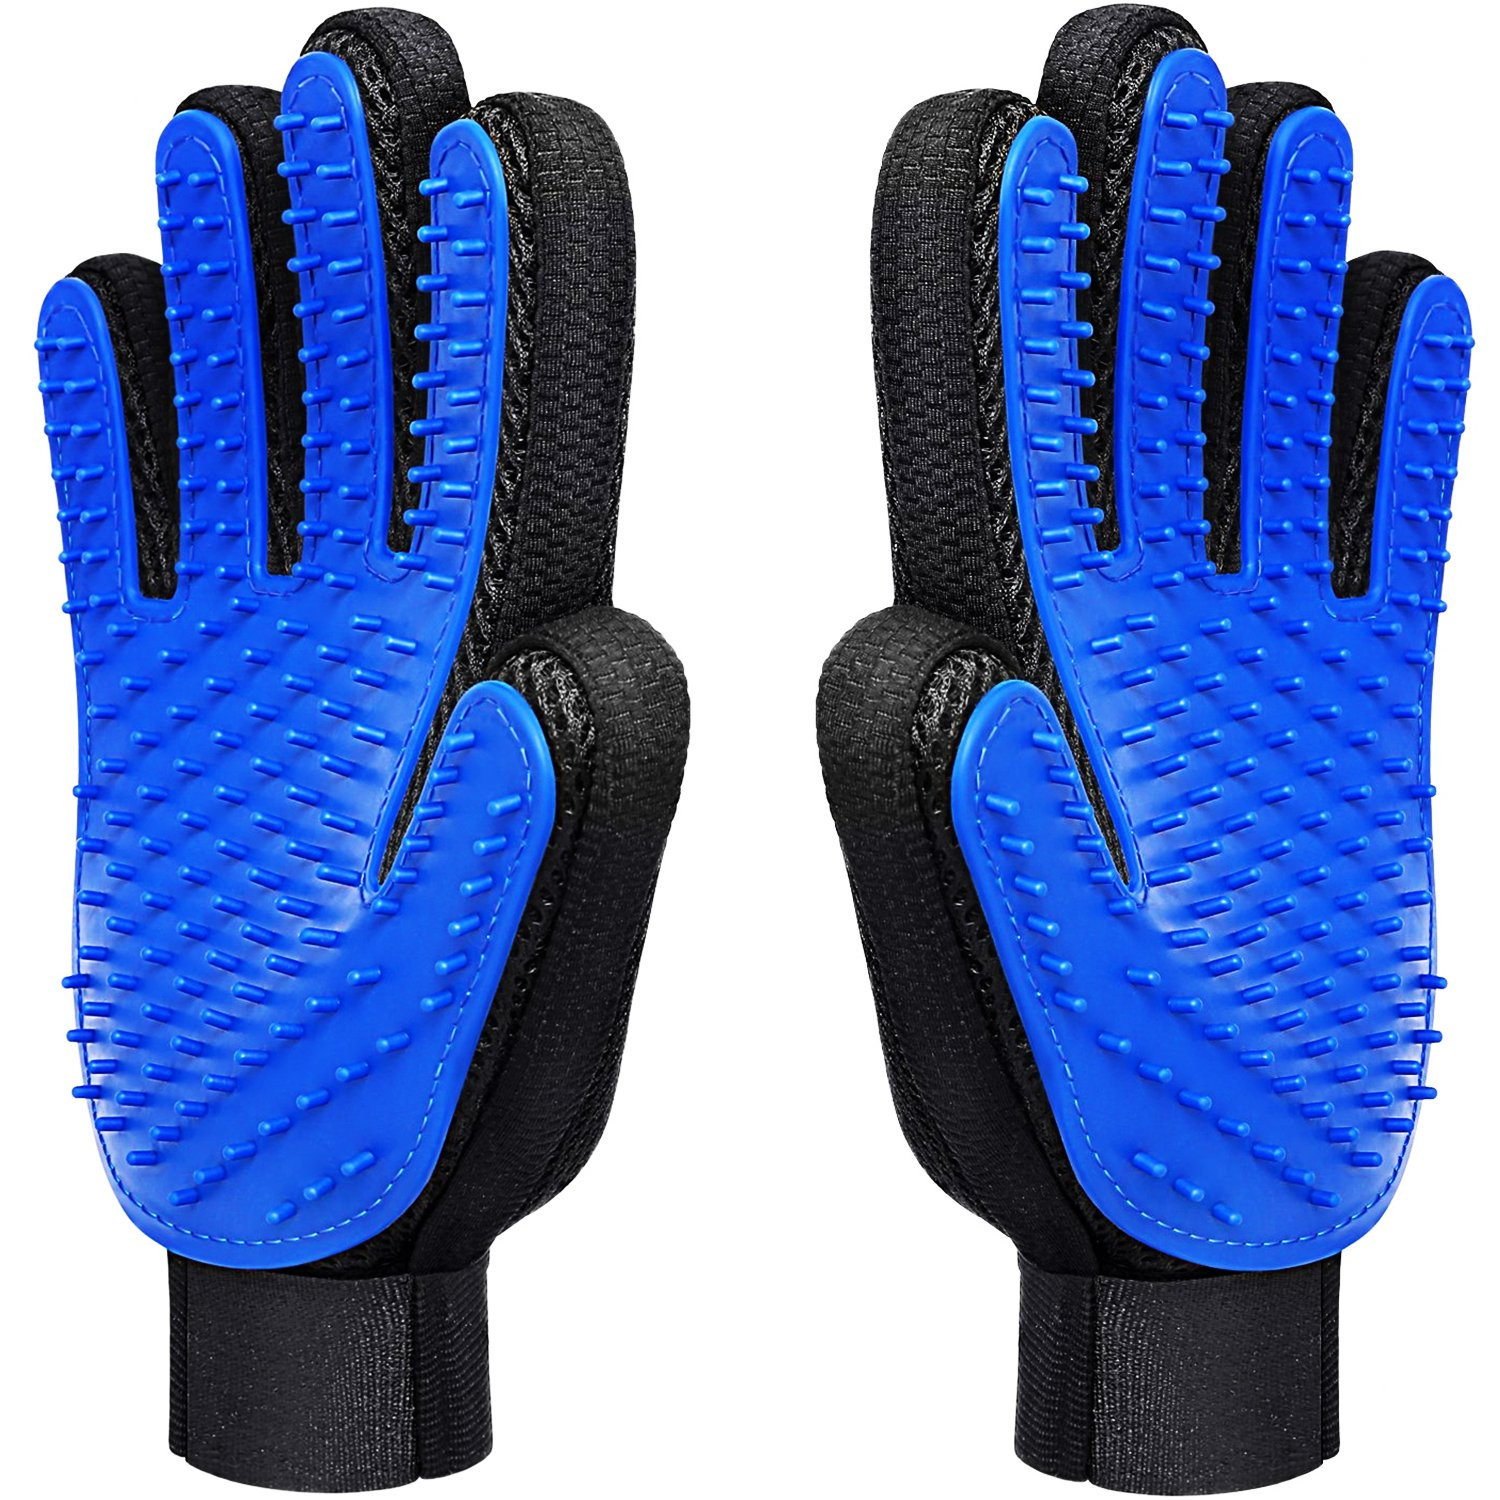 CU QUAN Pet Grooming Glove, Efficient Pet Hair Remover Mitts with Gentle Massage Tool, Five Finger Design Perfect for Dogs and Cats - One Pair (Blue)